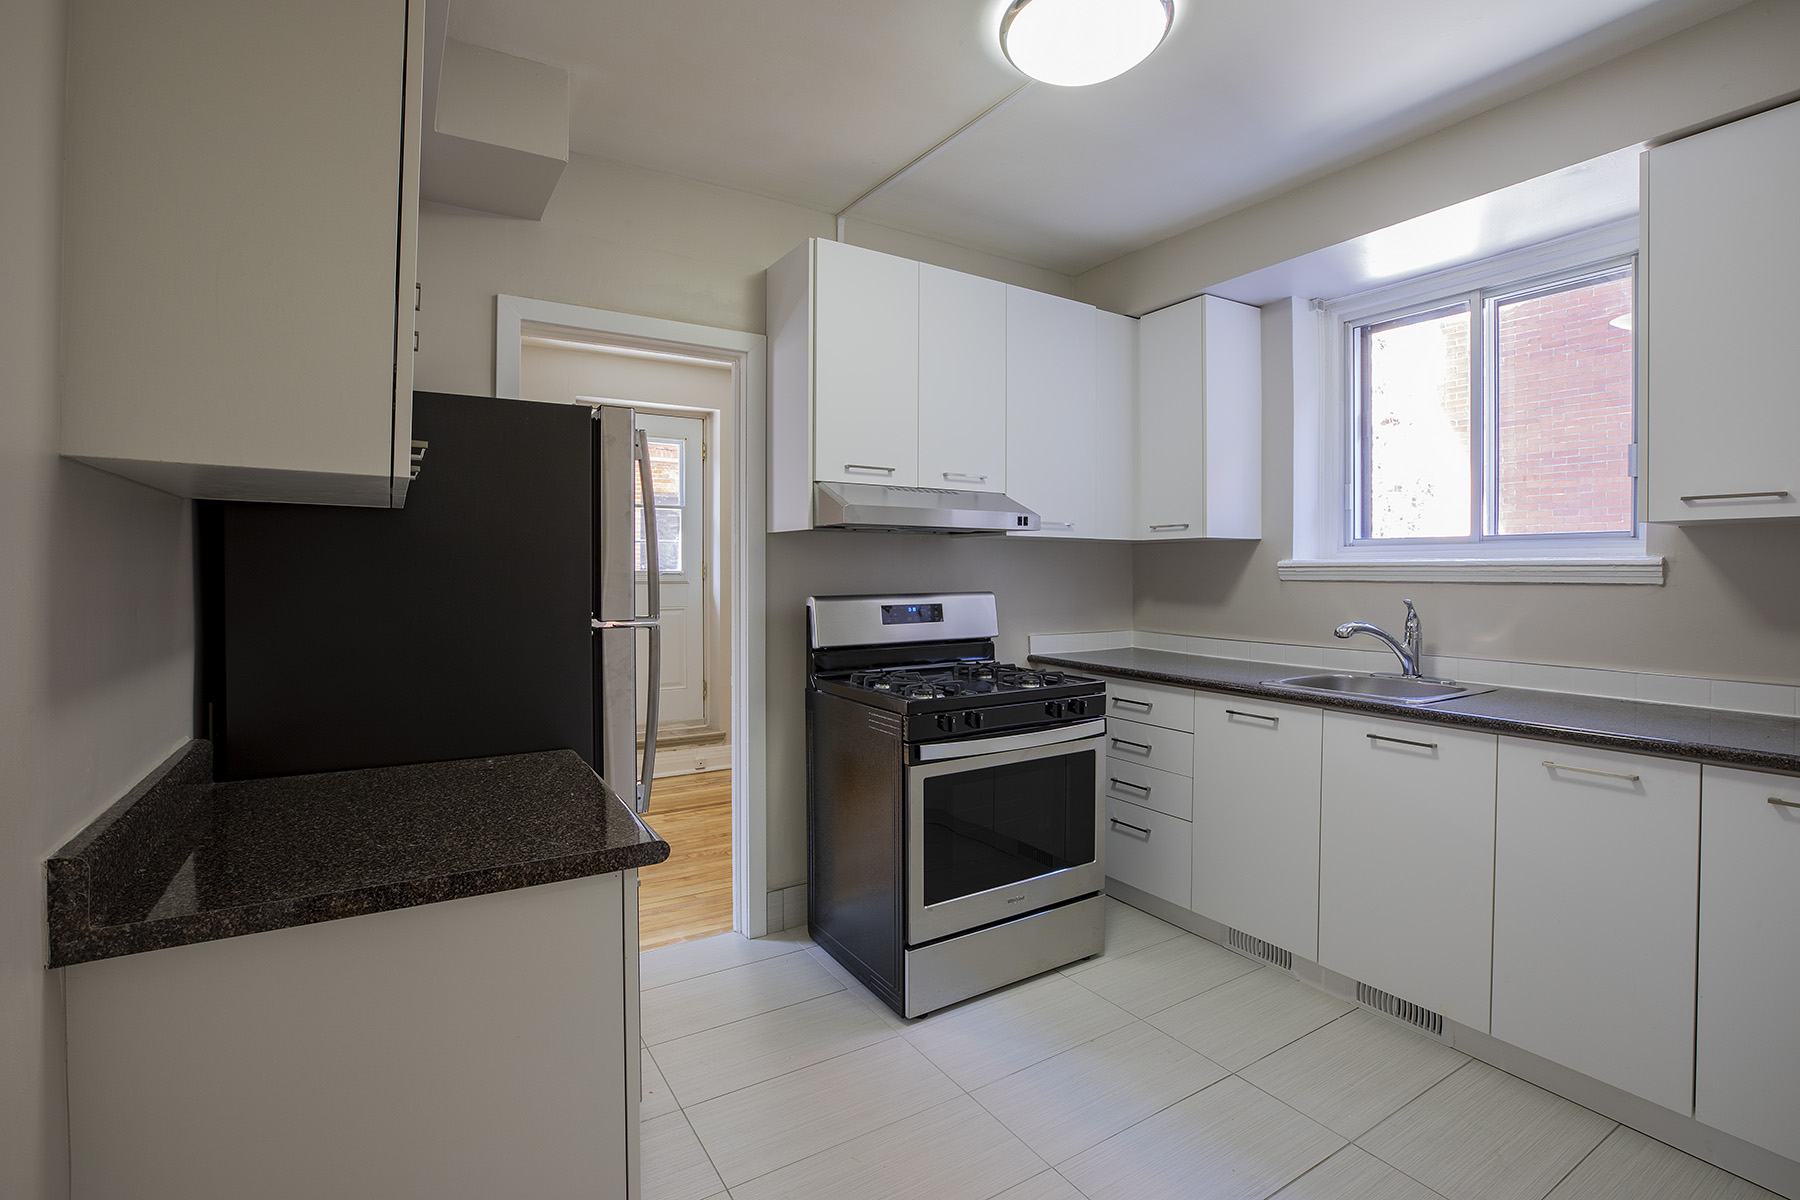 3 bedroom Apartments for rent in Cote-des-Neiges at 5000 Clanranald - Photo 08 - RentQuebecApartments – L401549